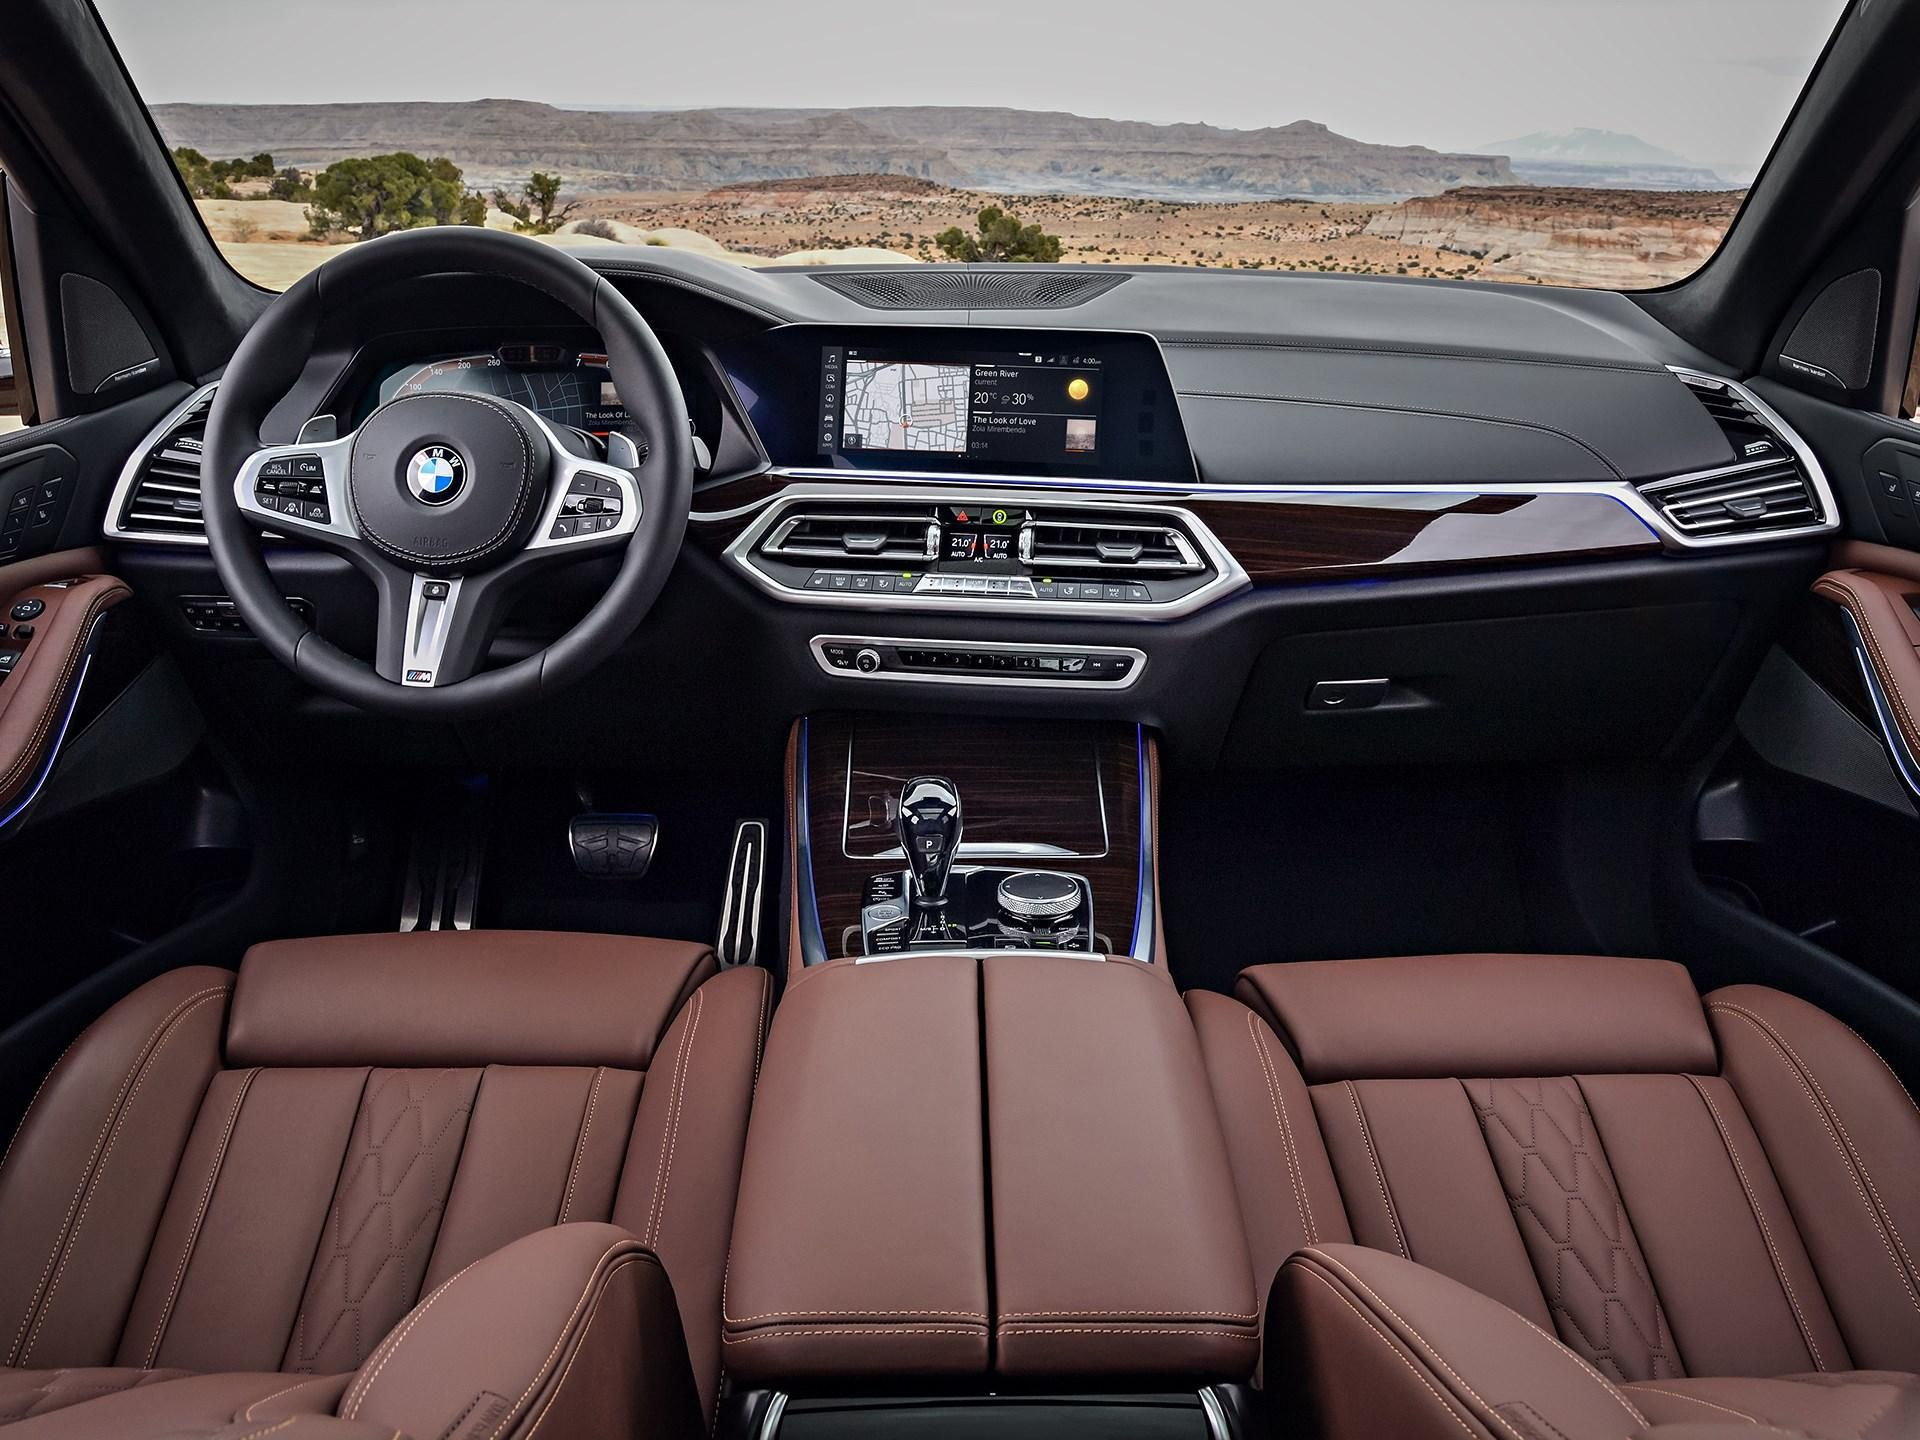 2019 Bmw X5 G05 This Is It First Official Photos Bmw